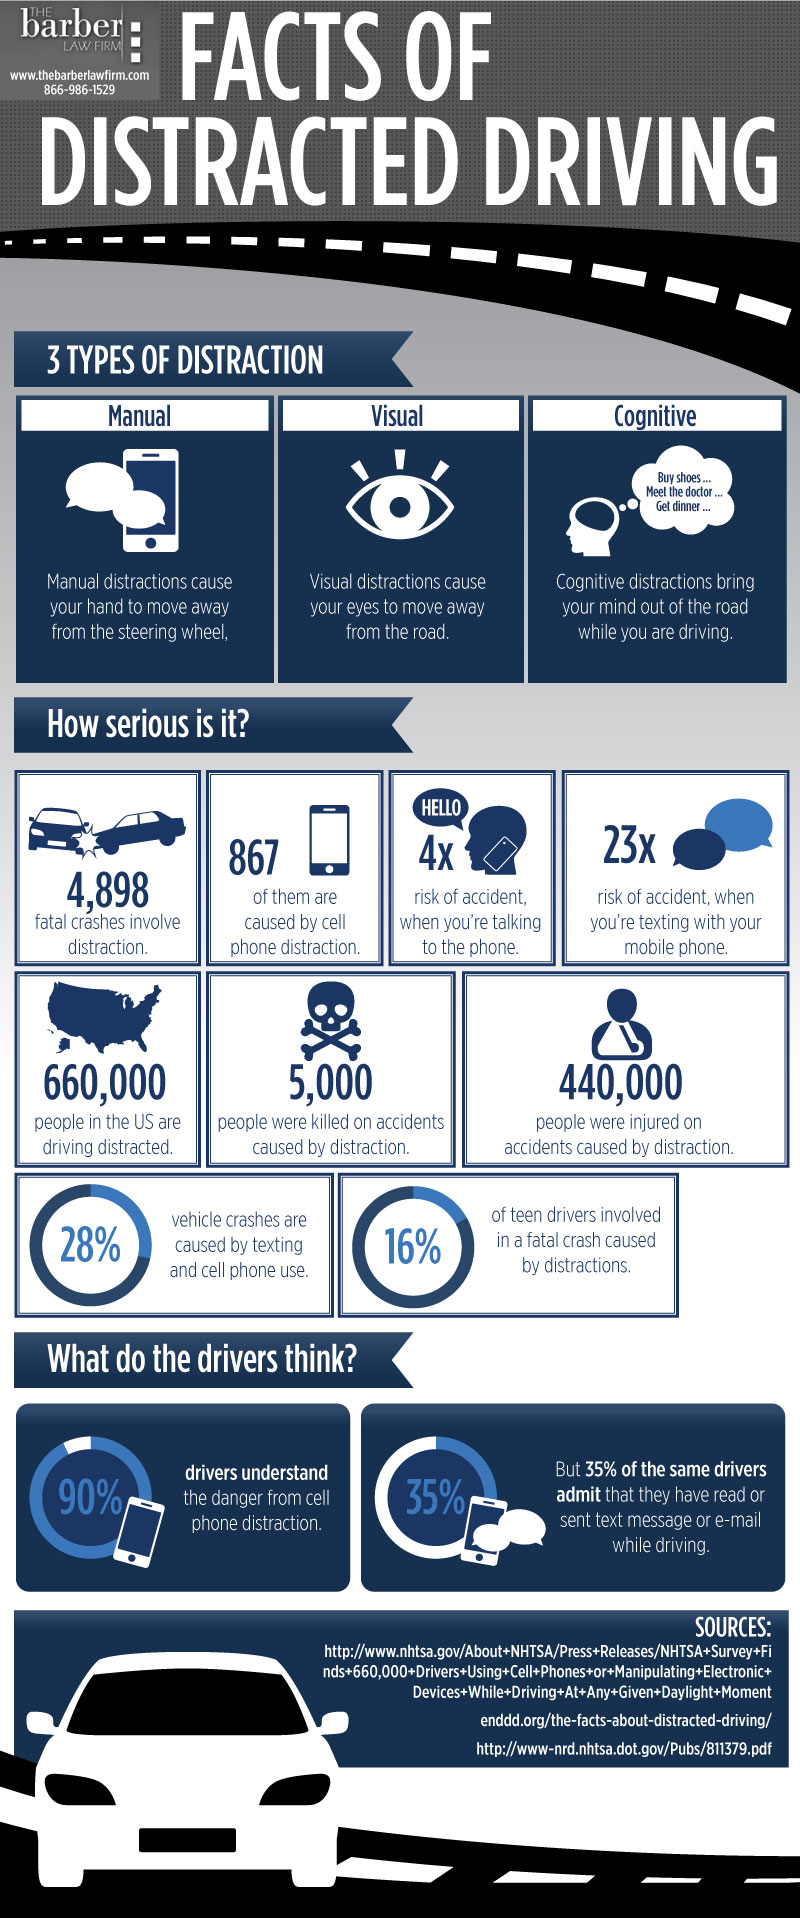 Facts of Distracted Driving